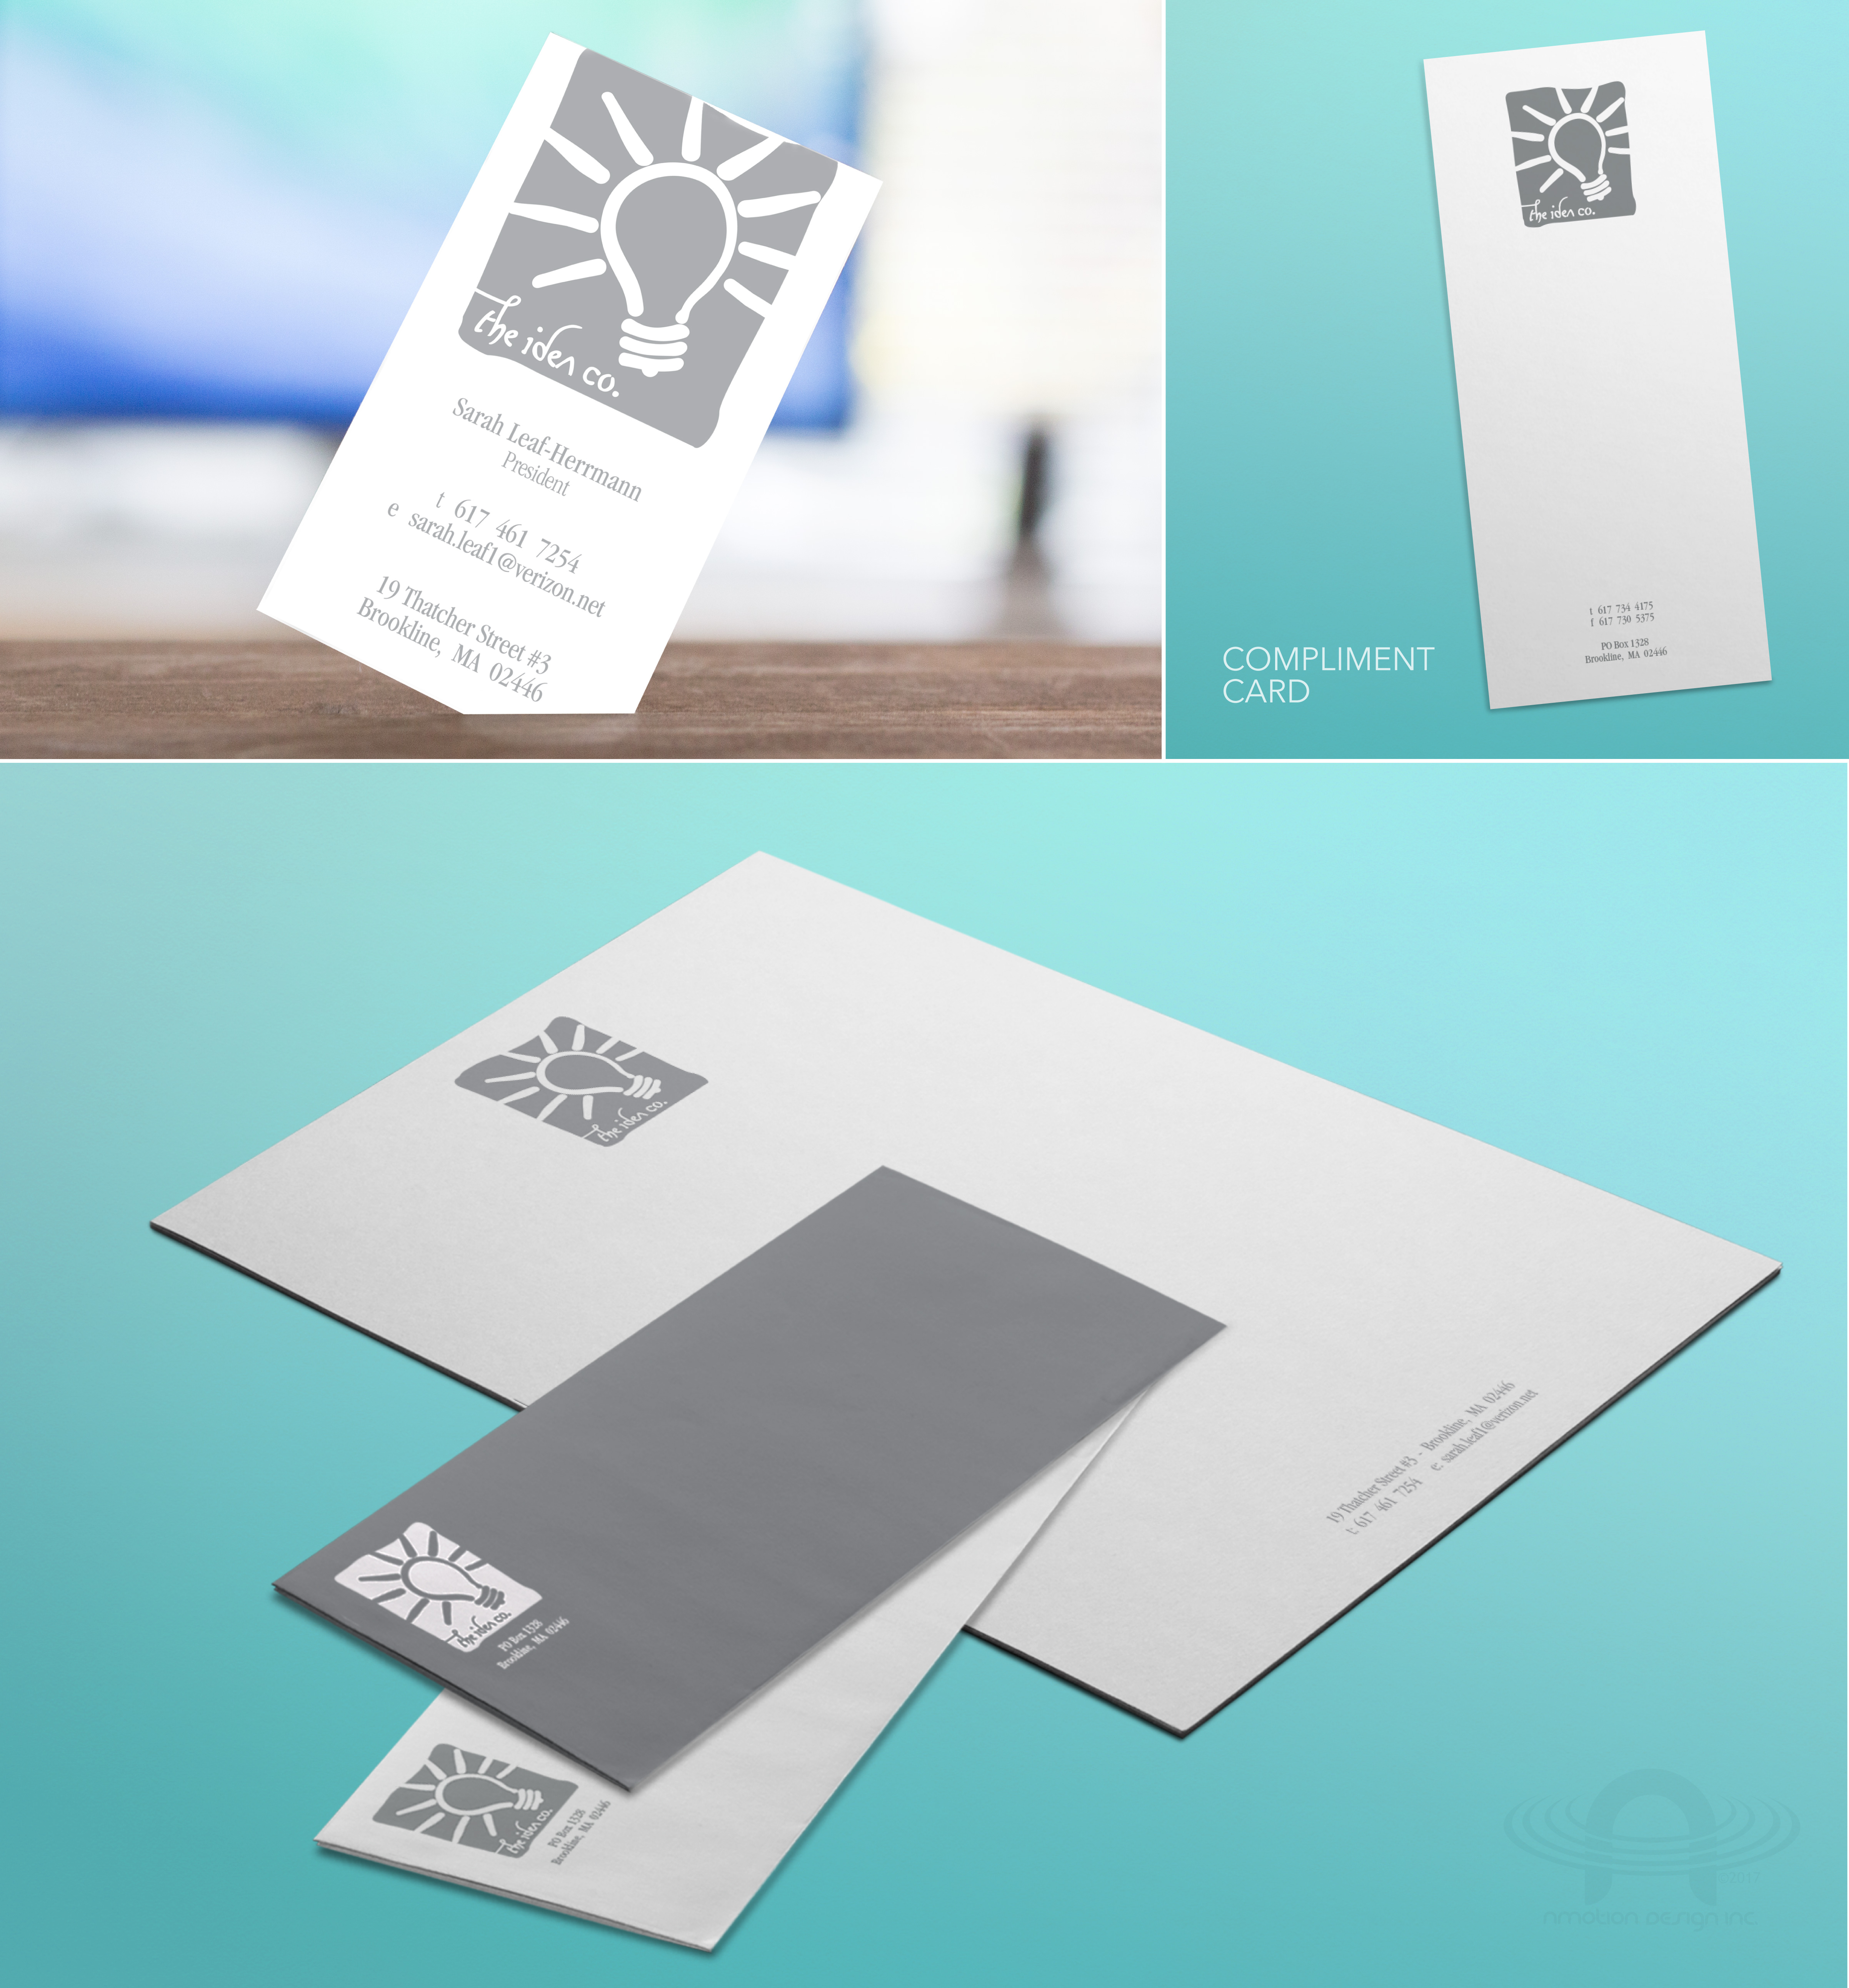 IDEA CO. FULL BRANDING AND SALES PACKAGE